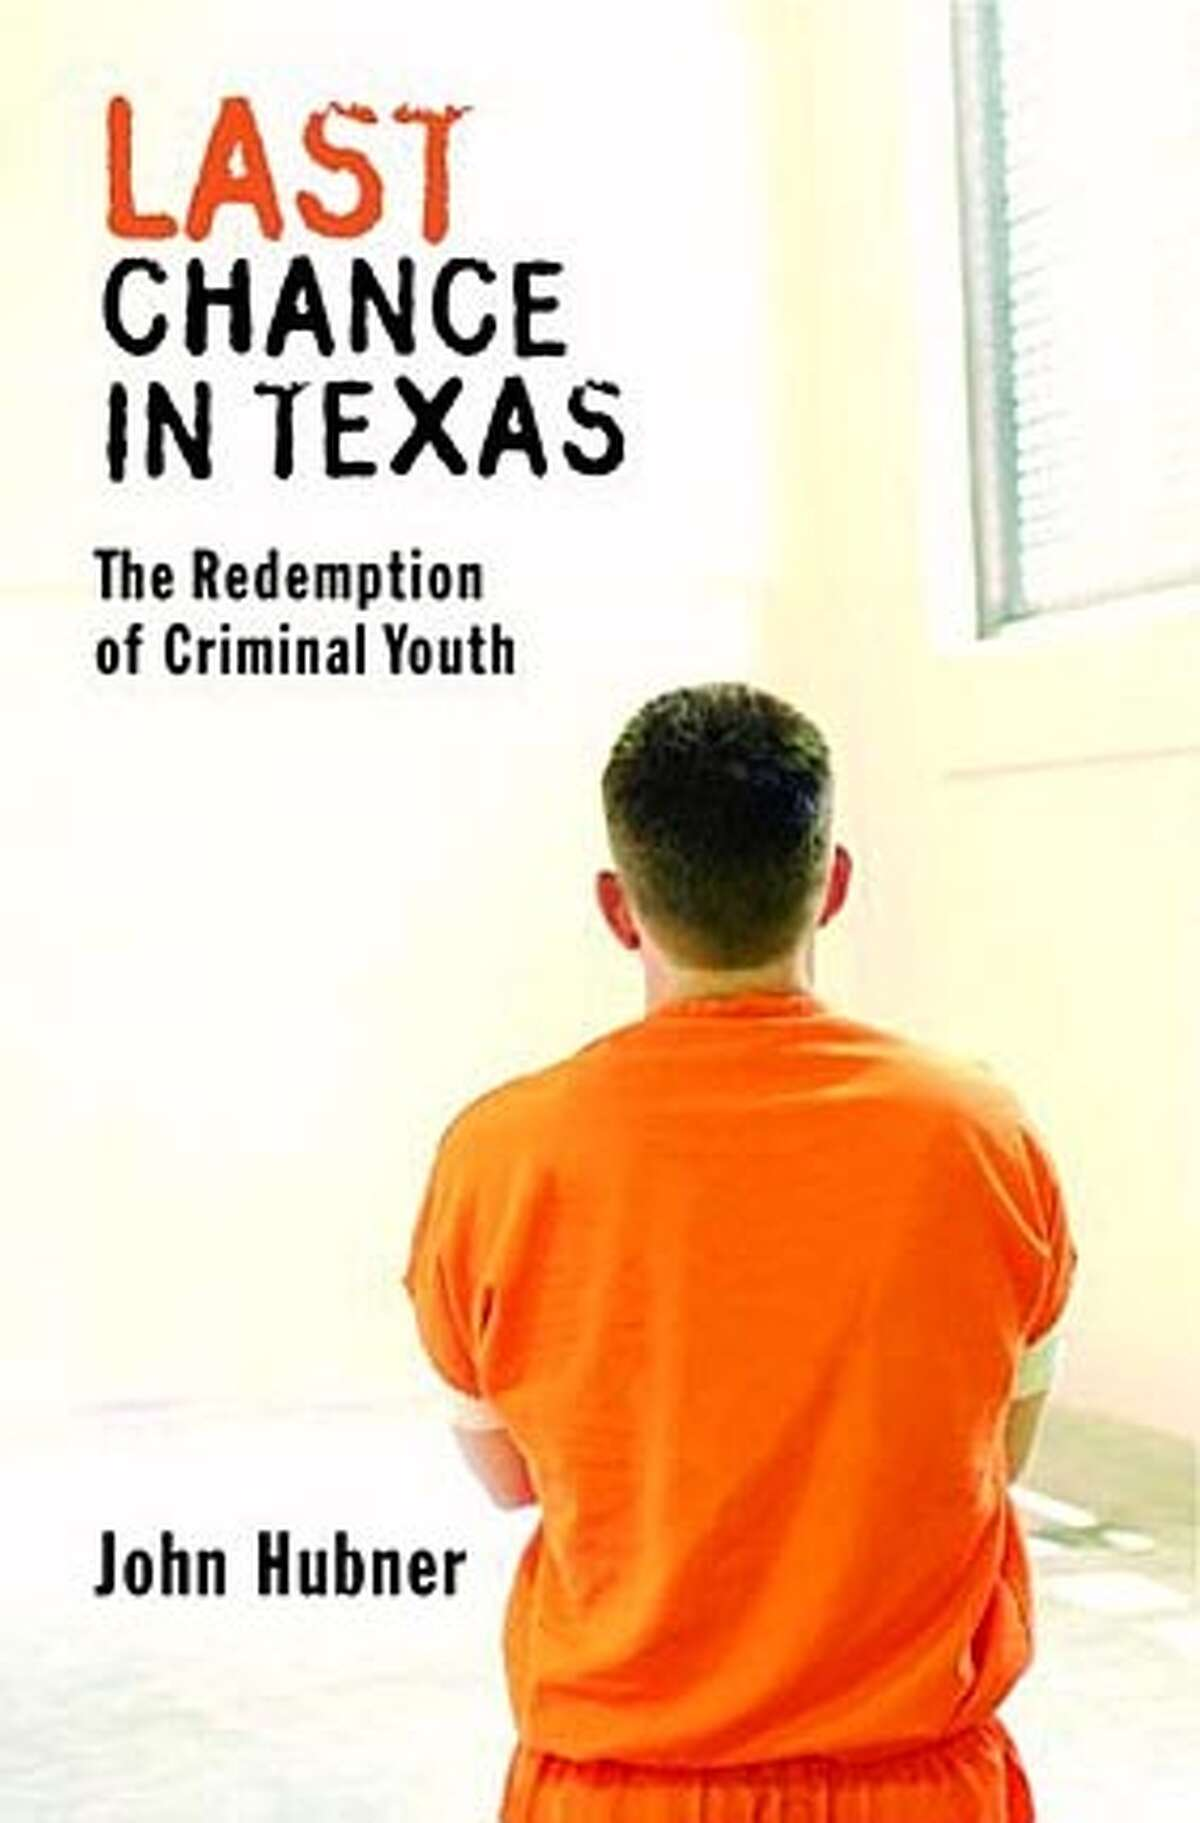 Last Chance in Texas : The Redemption of Criminal Youth. BookReview#BookReview#Chronicle#09-04-2005#ALL#2star#e2#0423215672